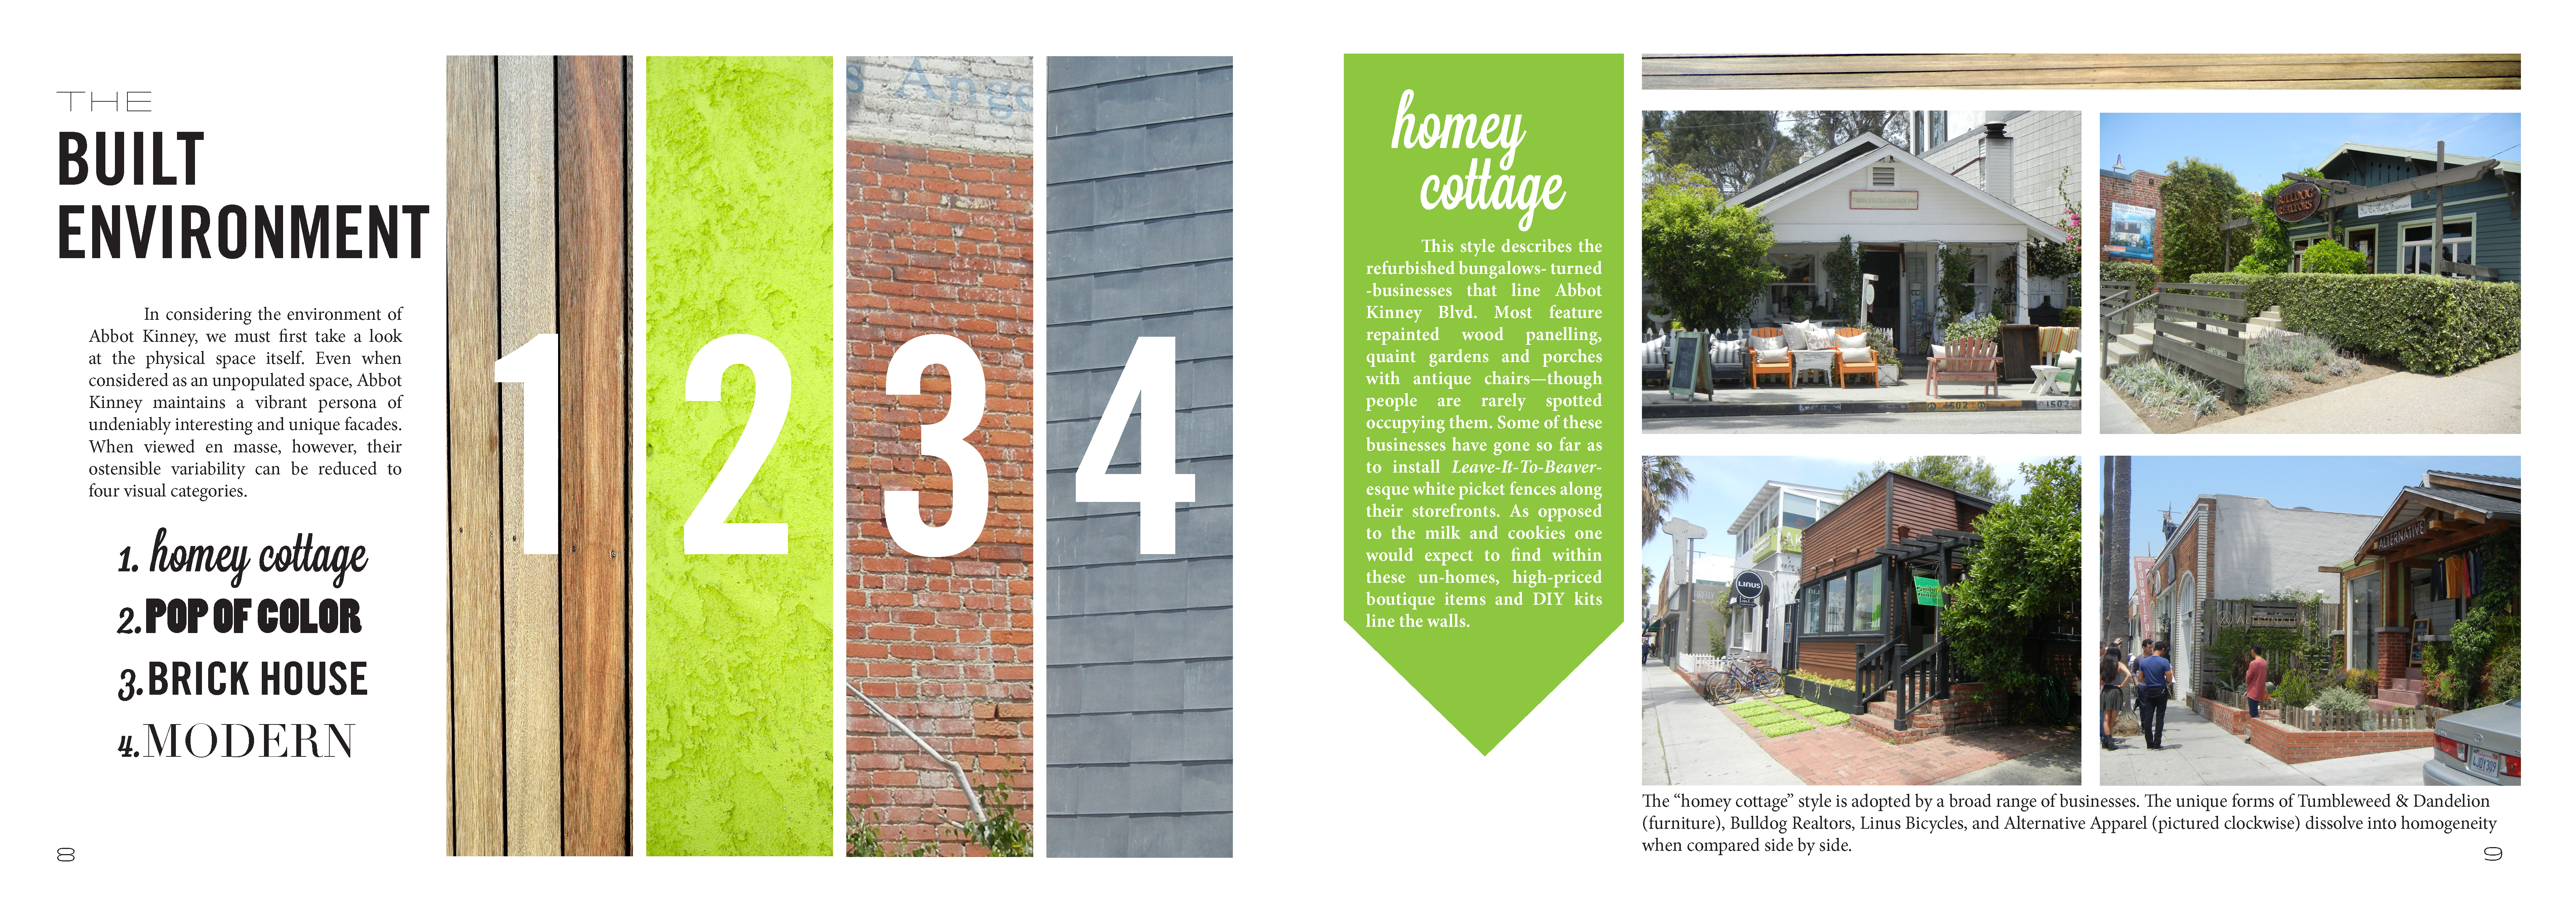 Abbot Kinney Guide Book (p.5)